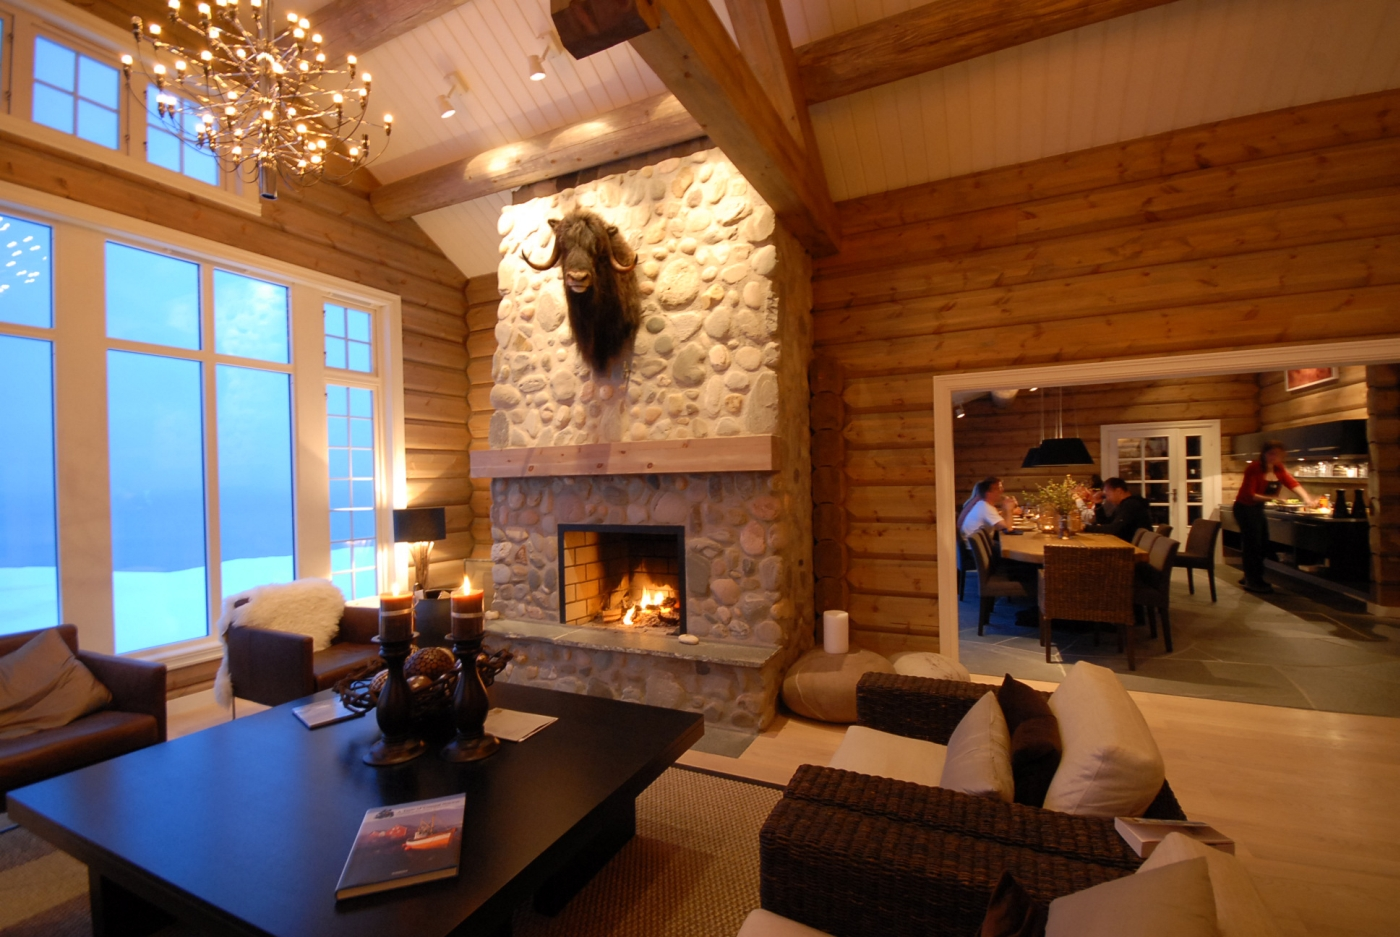 Cosy lounge area with fireplace at Lyngen Lodge in Norway